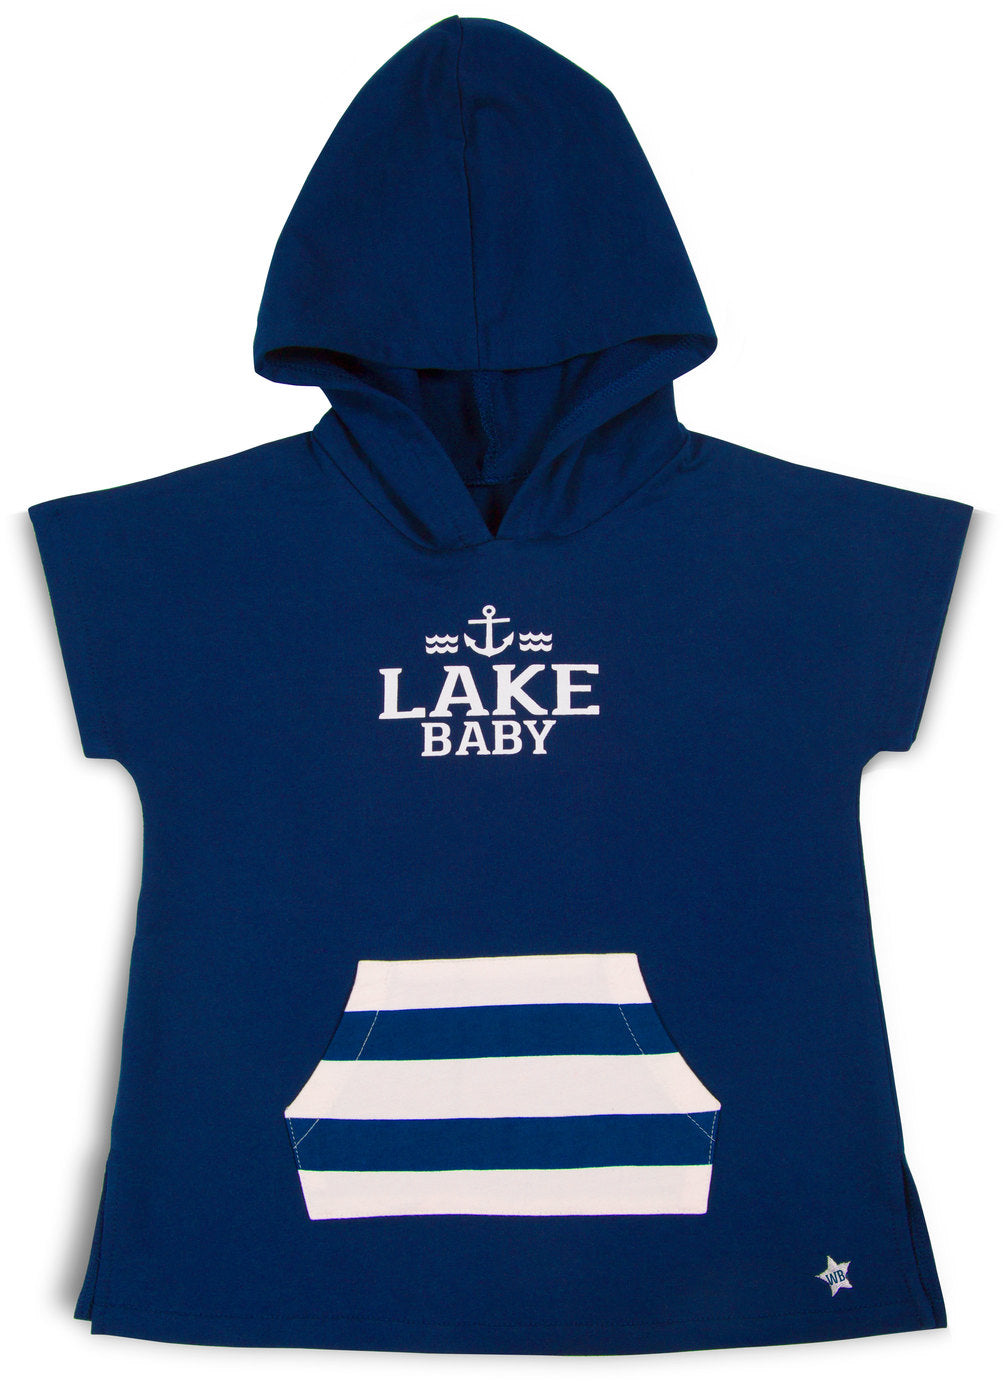 Lake Baby No Sleeve French Terry Cloth Hoodie (2T - 3T) Terry Cloth Hoodie We Baby - GigglesGear.com